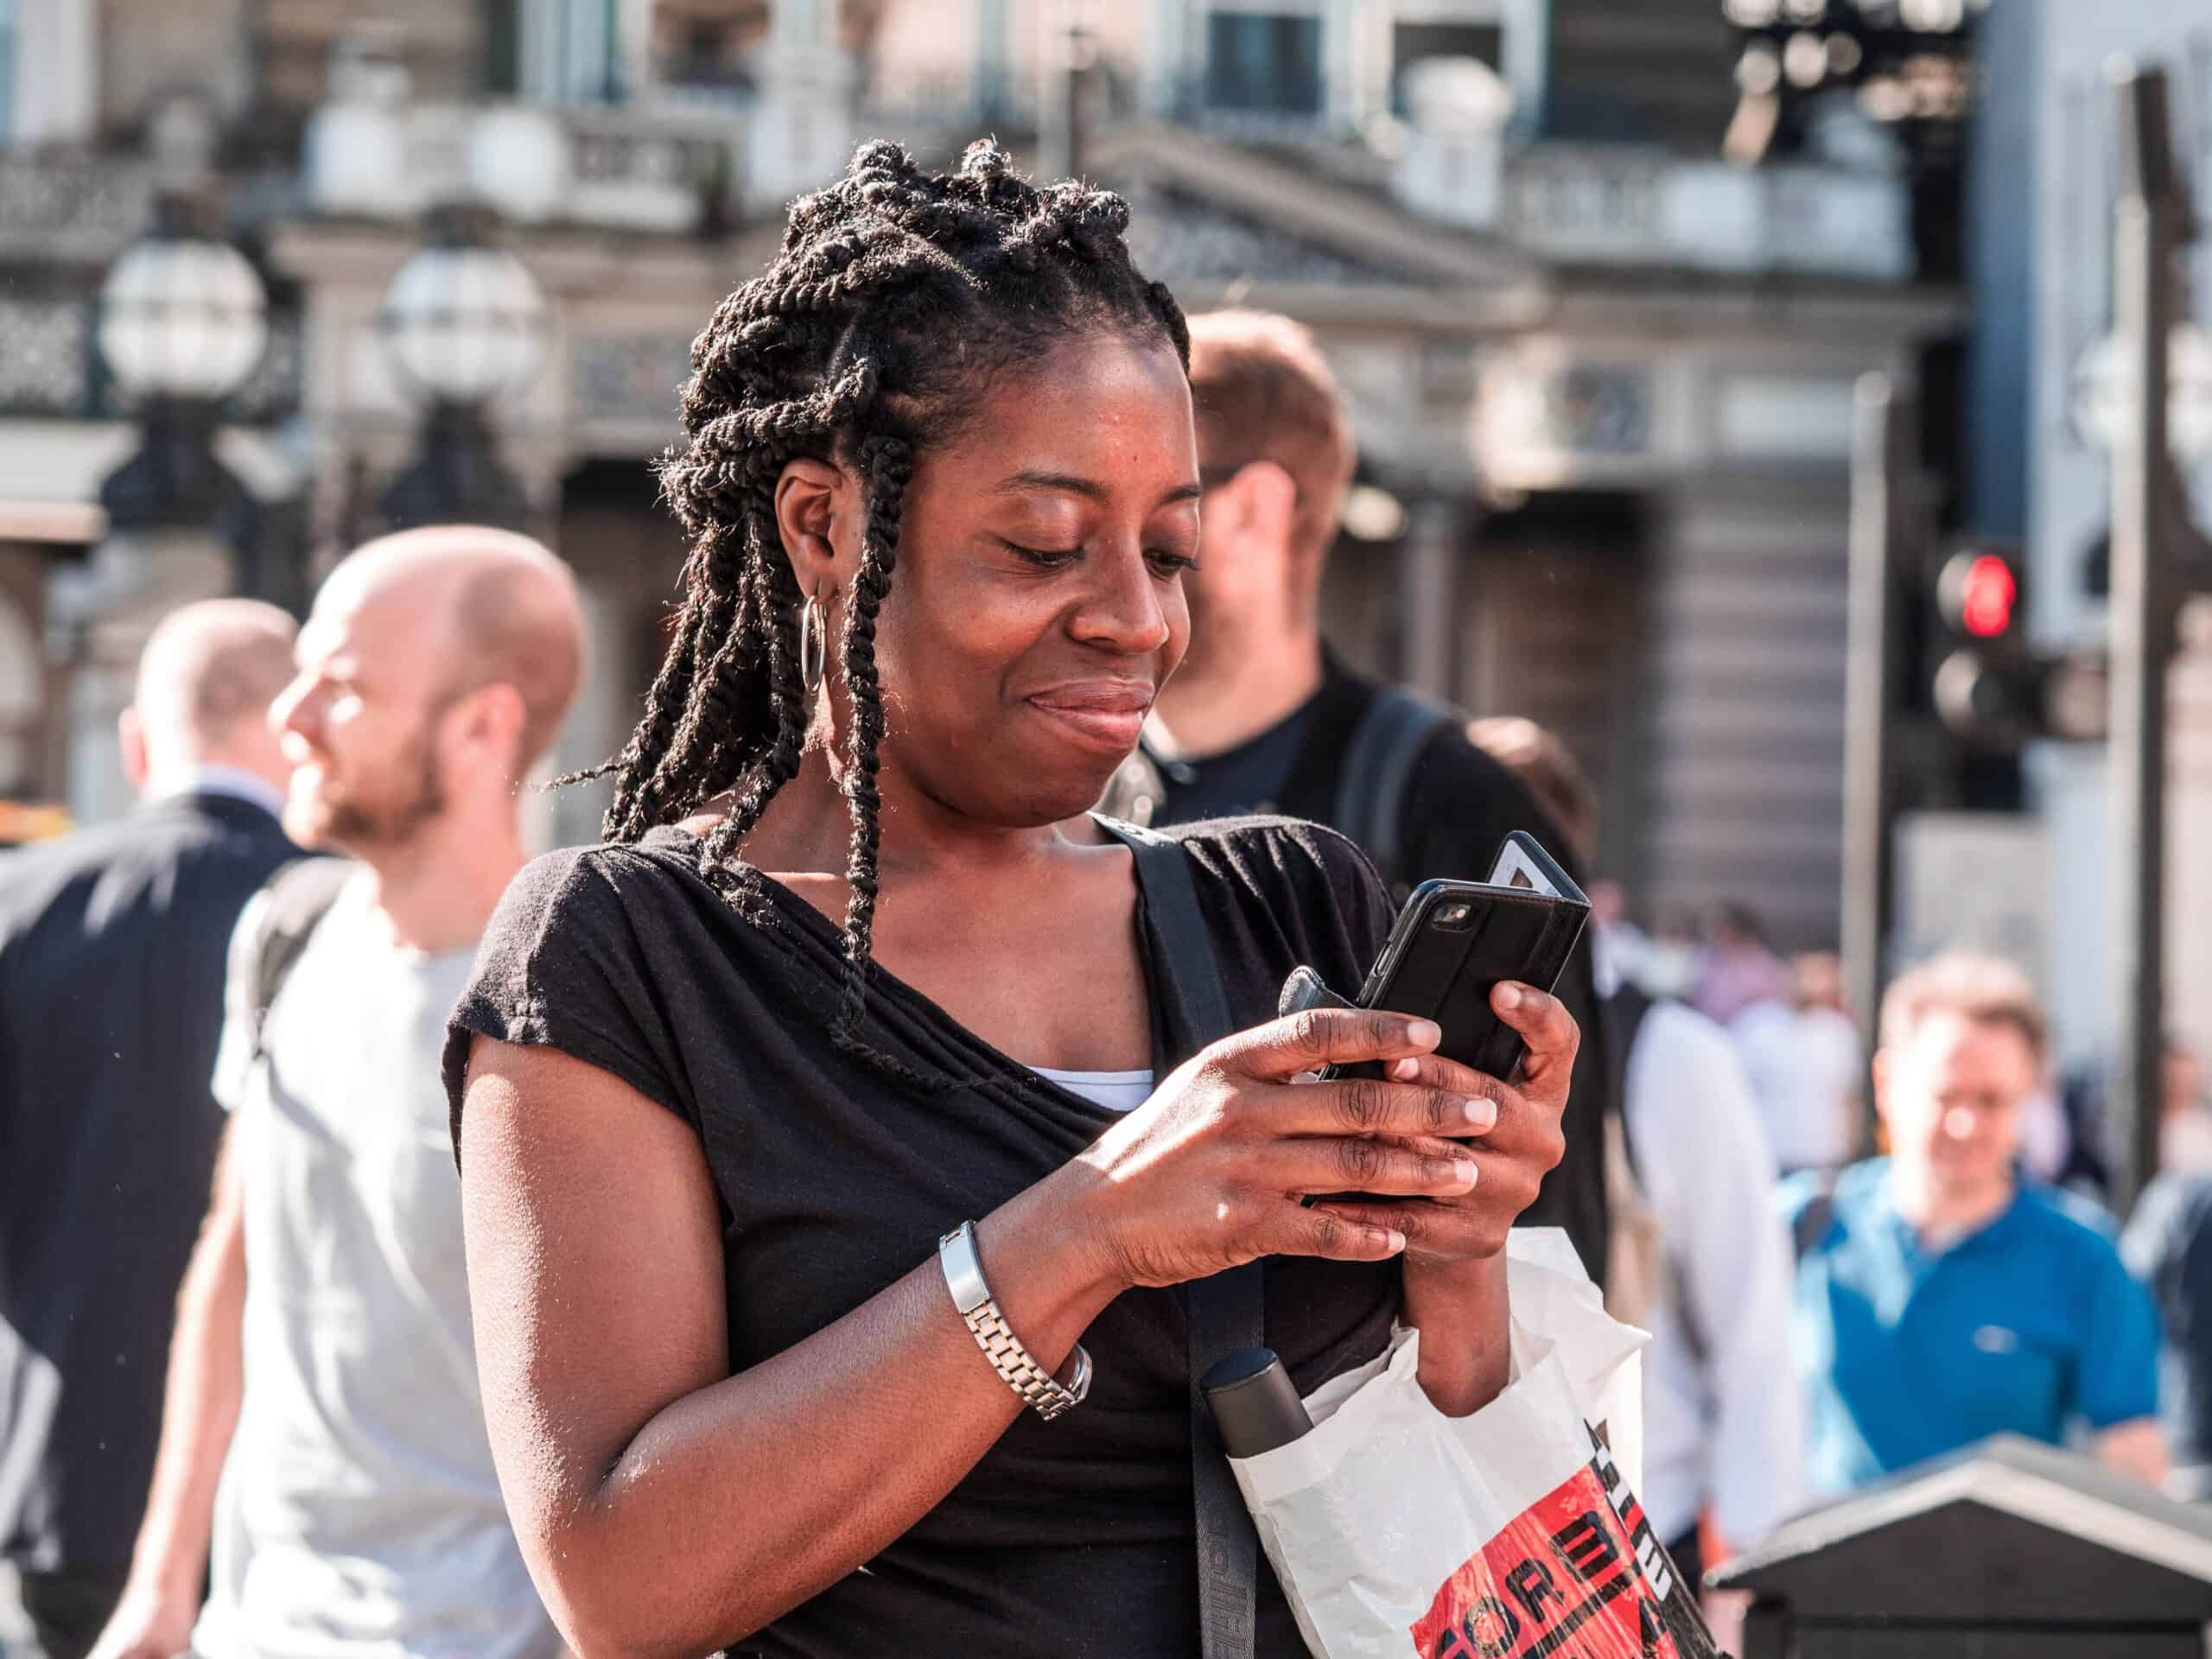 person of color using smartphone